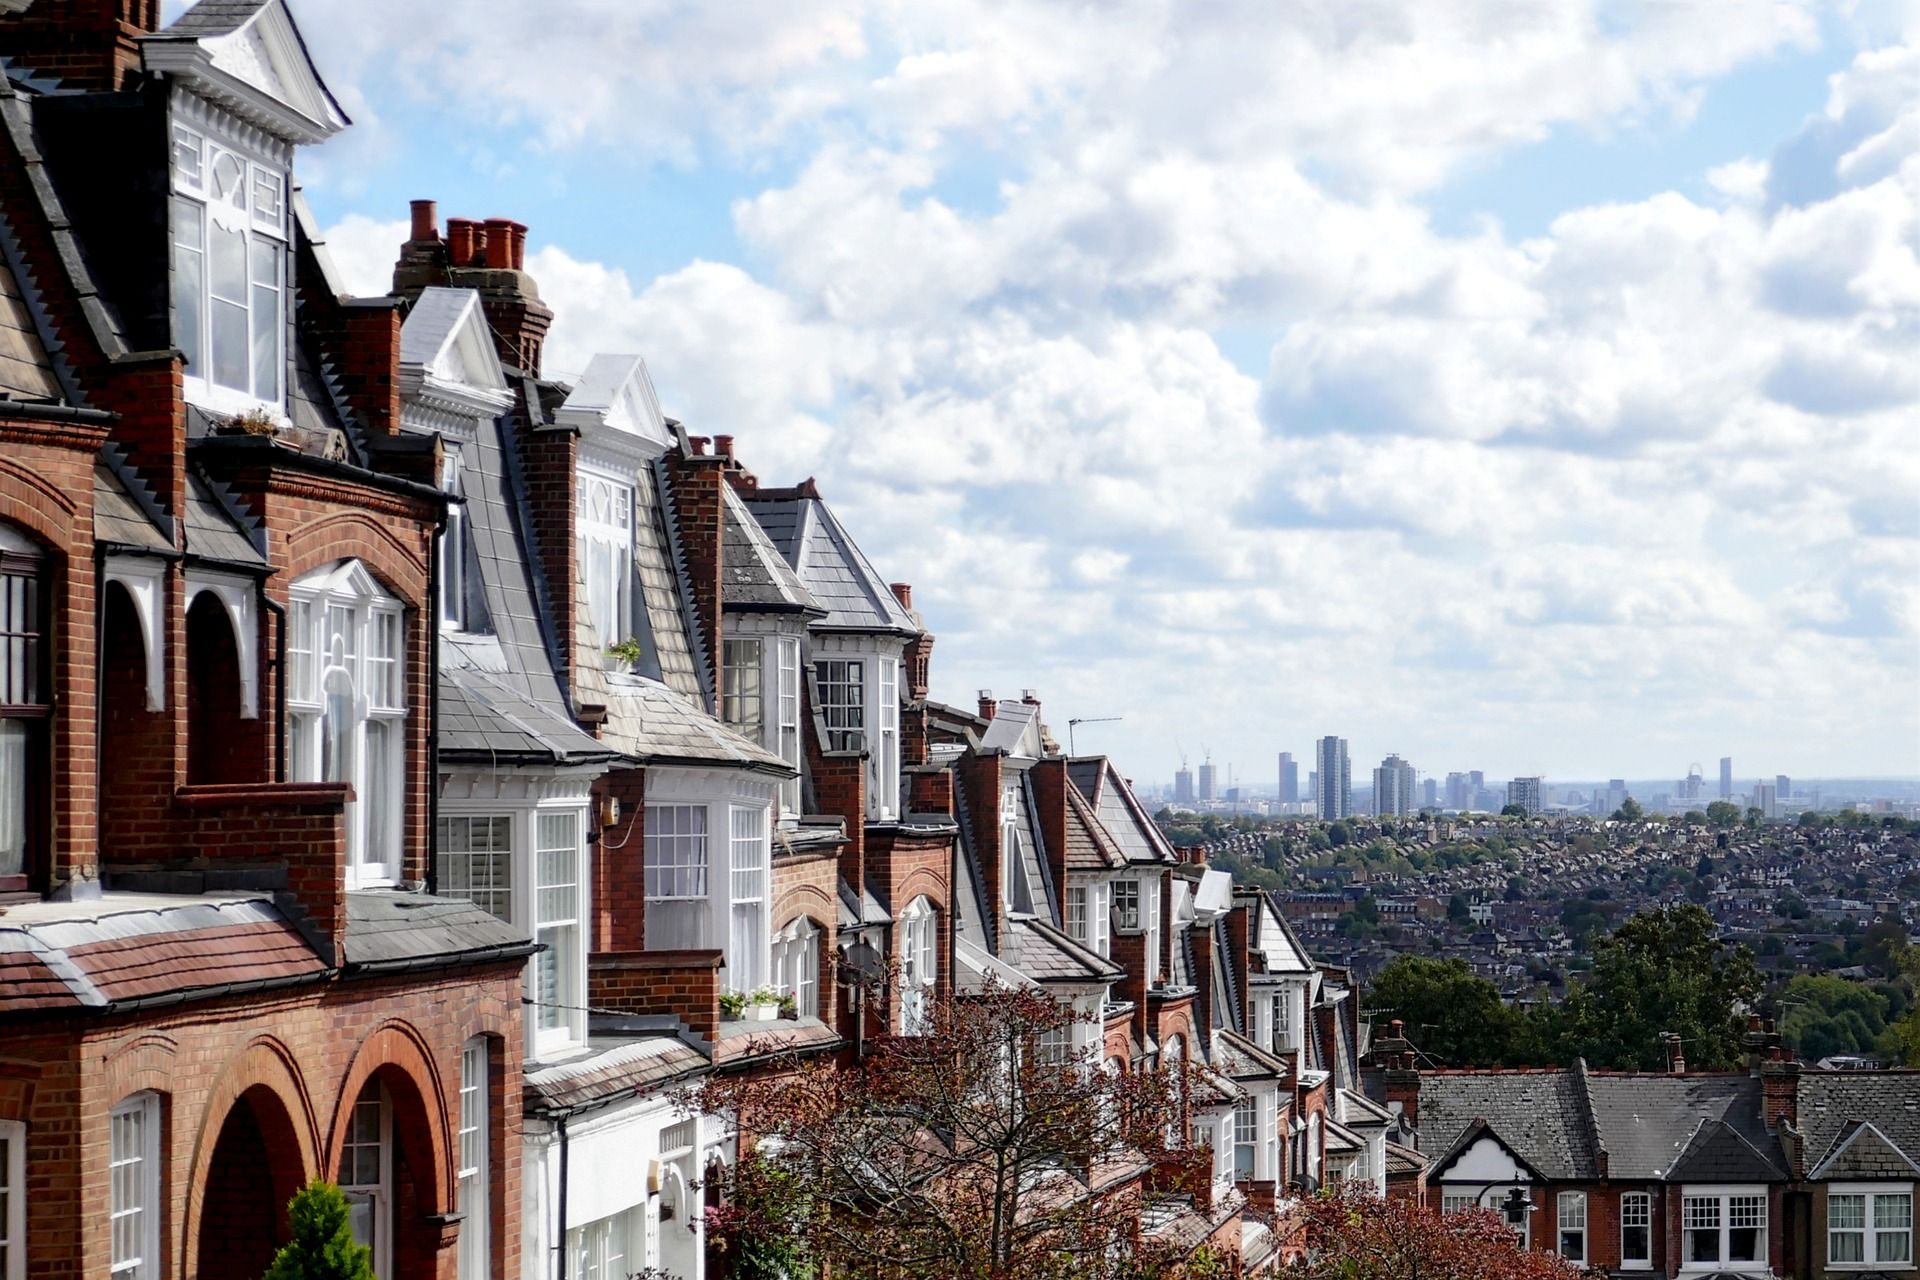 London street with a view of the city